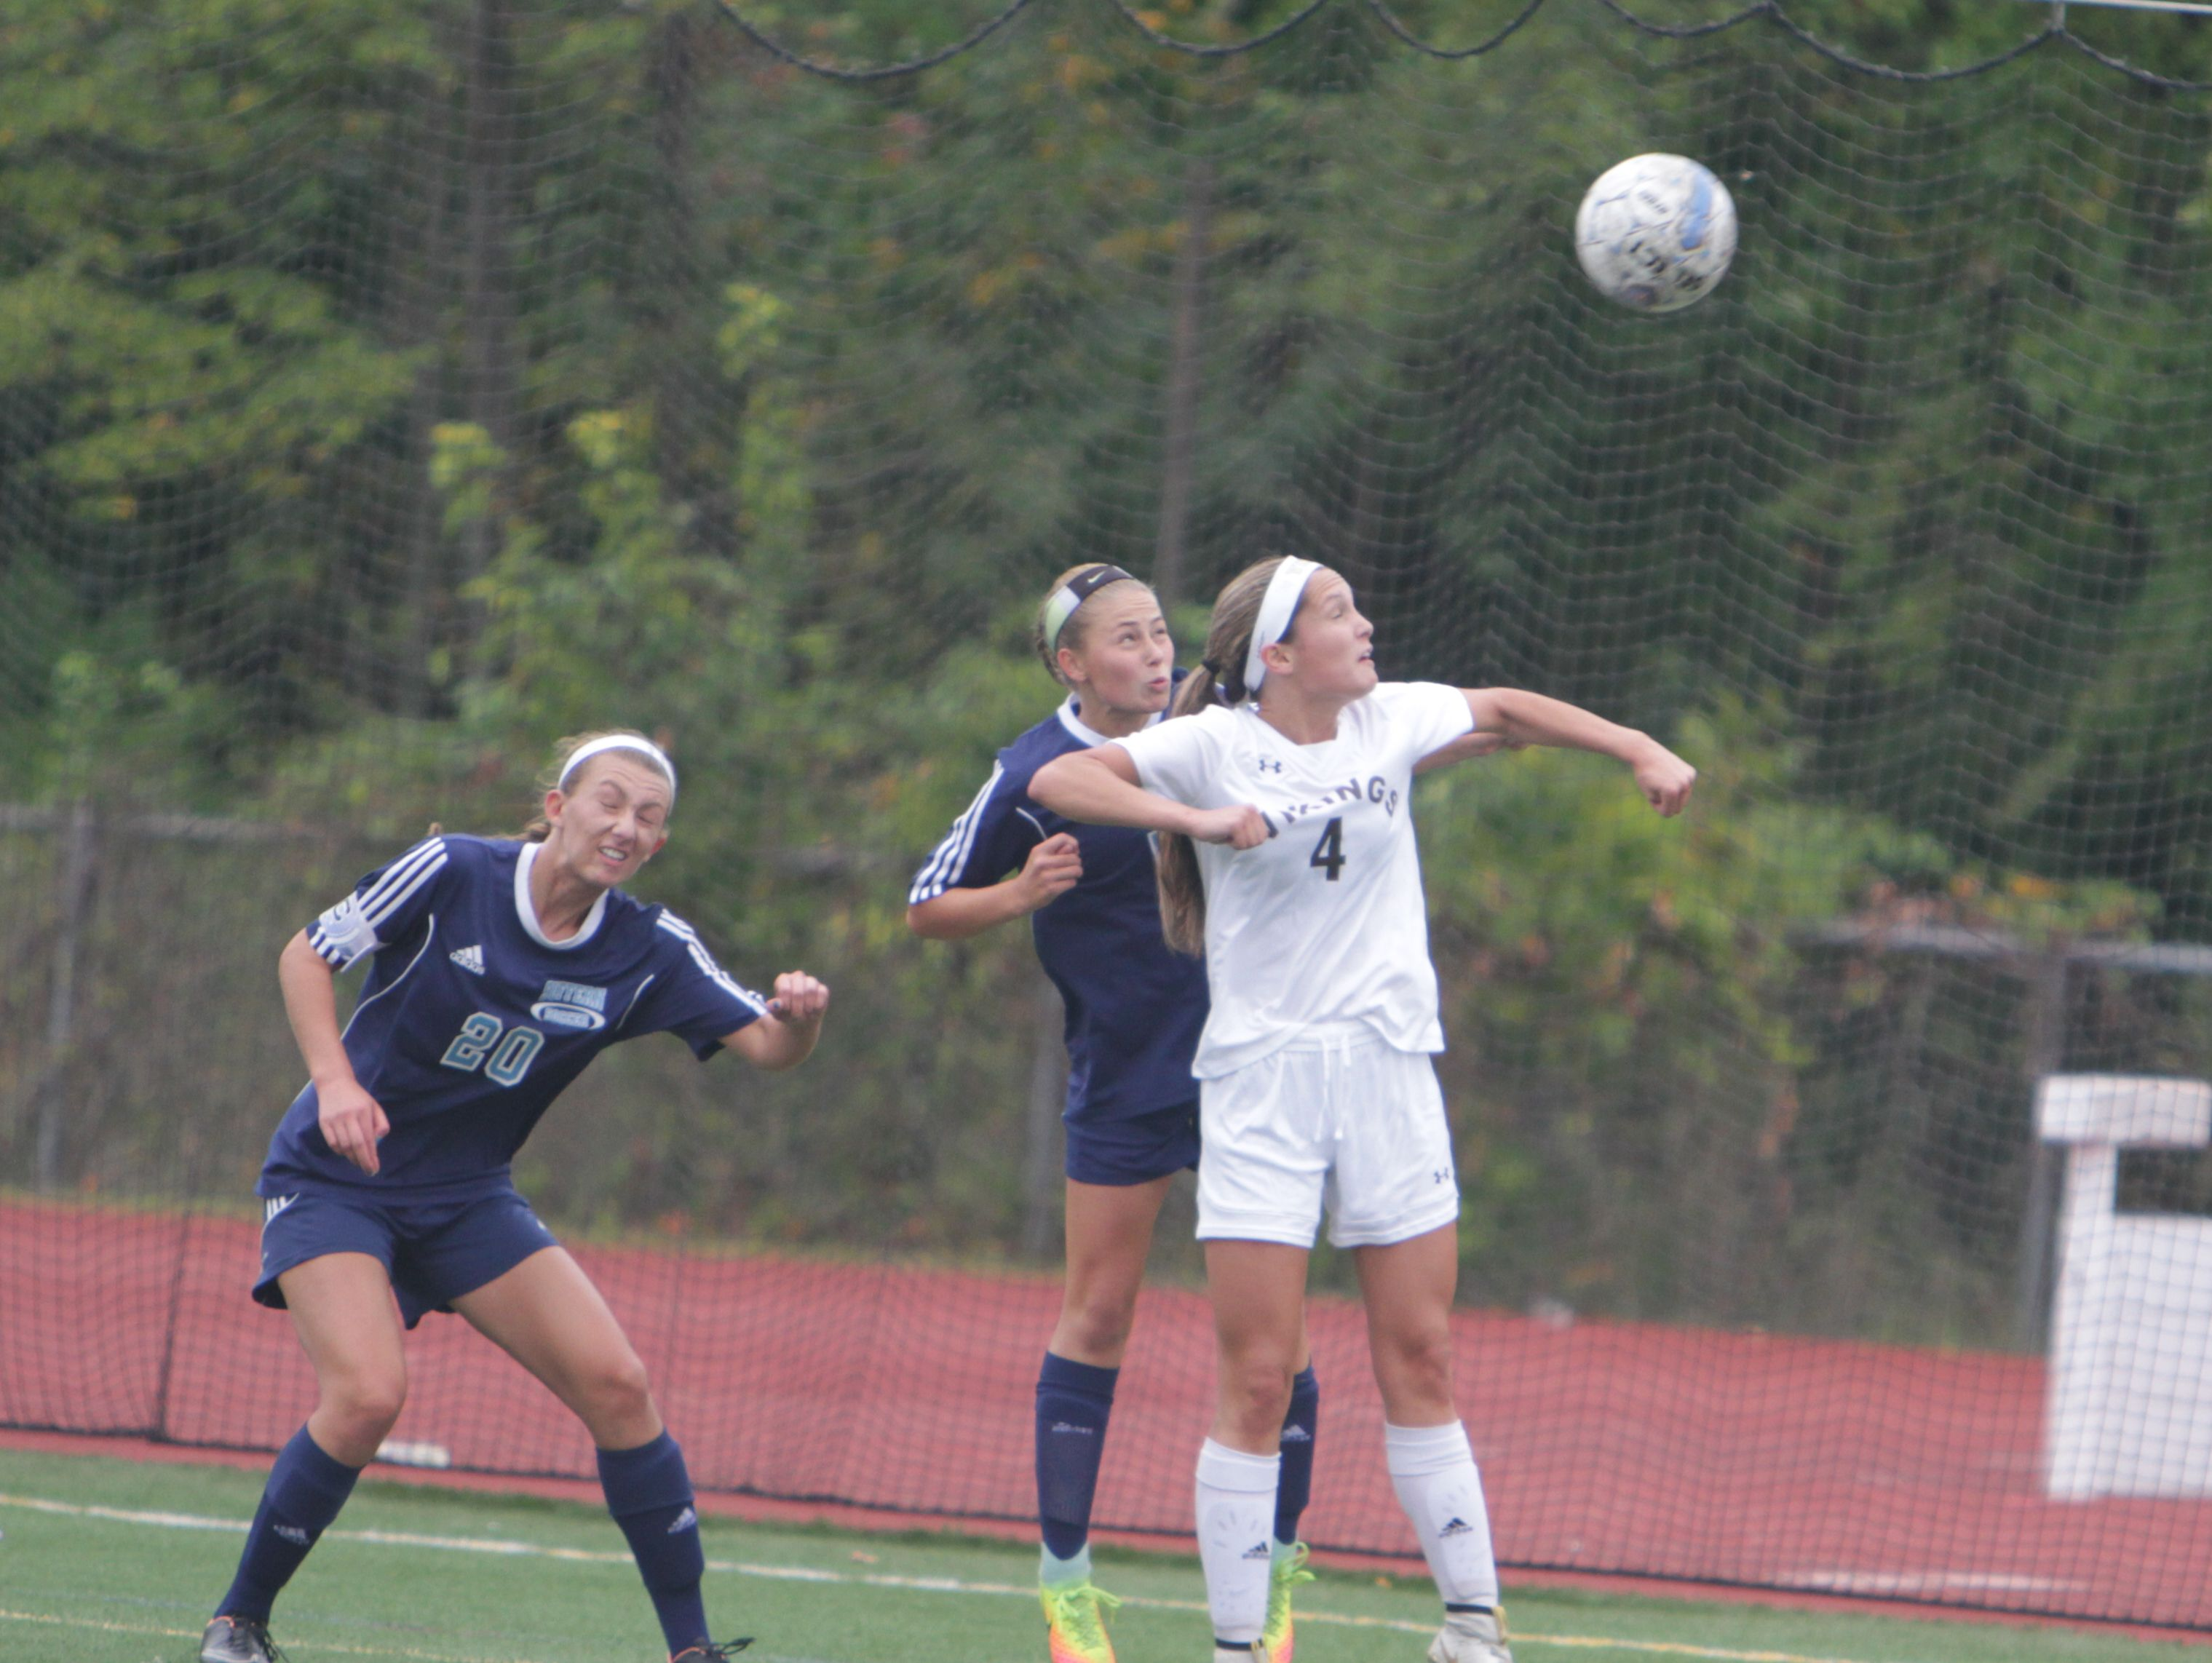 Clarkstown South's Fiona Cummings (4) and Suffern's Abby Bosco (middle) jump for a ball in the air, with Suffern's Jayne Goldman looking on, during a Section 1 girls soccer game between Clarkstown South and Suffern at Clarkstown South High School on Saturday, October 1st, 2016. Clarkstown South won 1-0 in overtime.